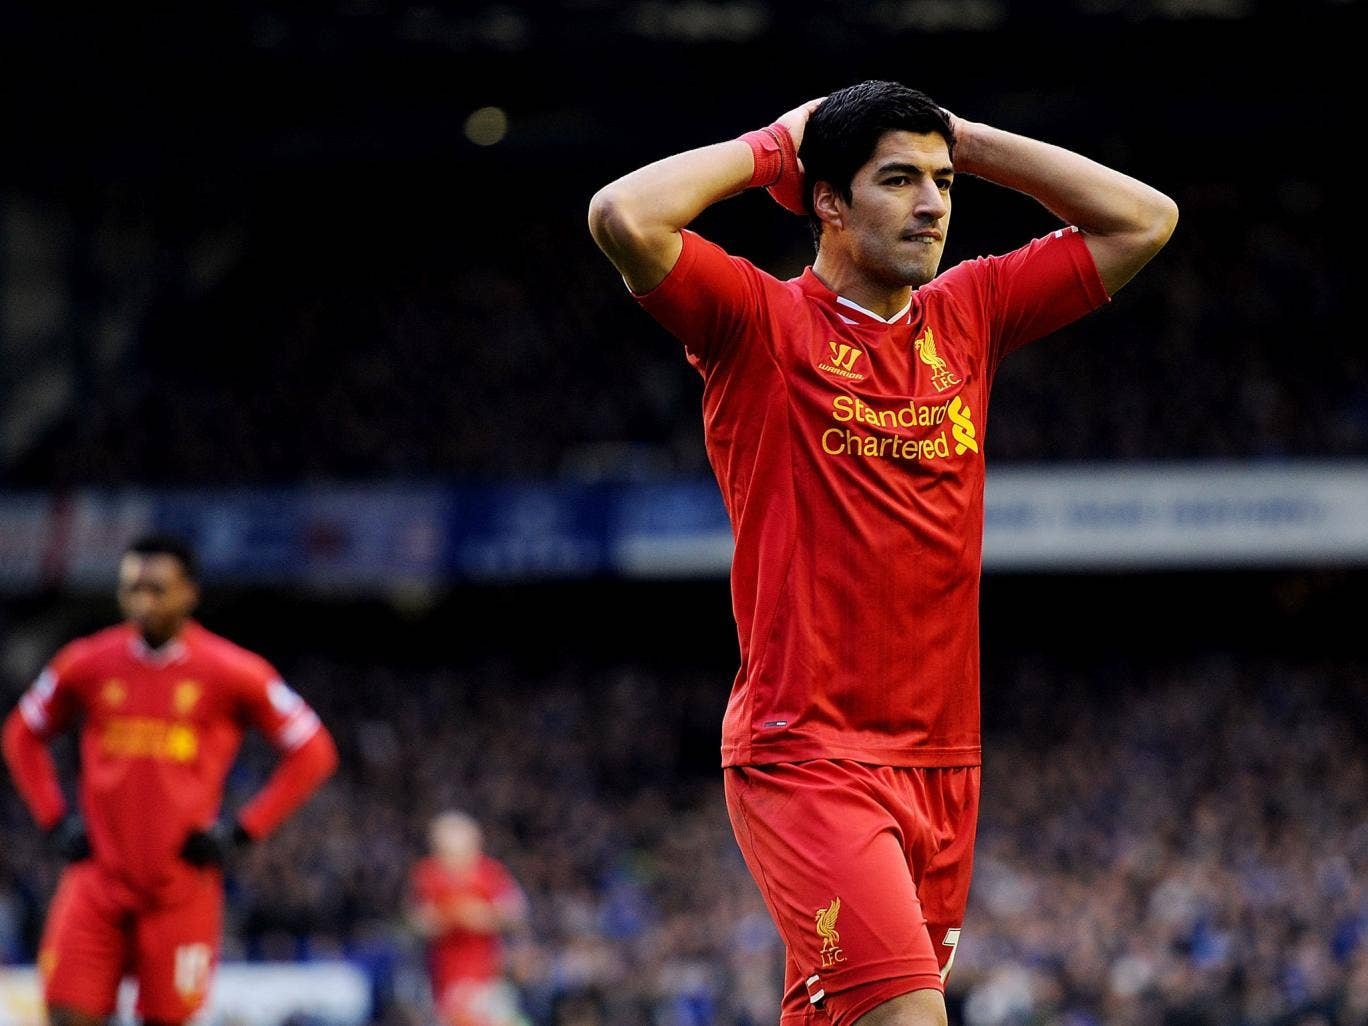 Luis Suarez looks dejected after missing a late chance to hand Liverpool victory against Merseyside rivals Everton